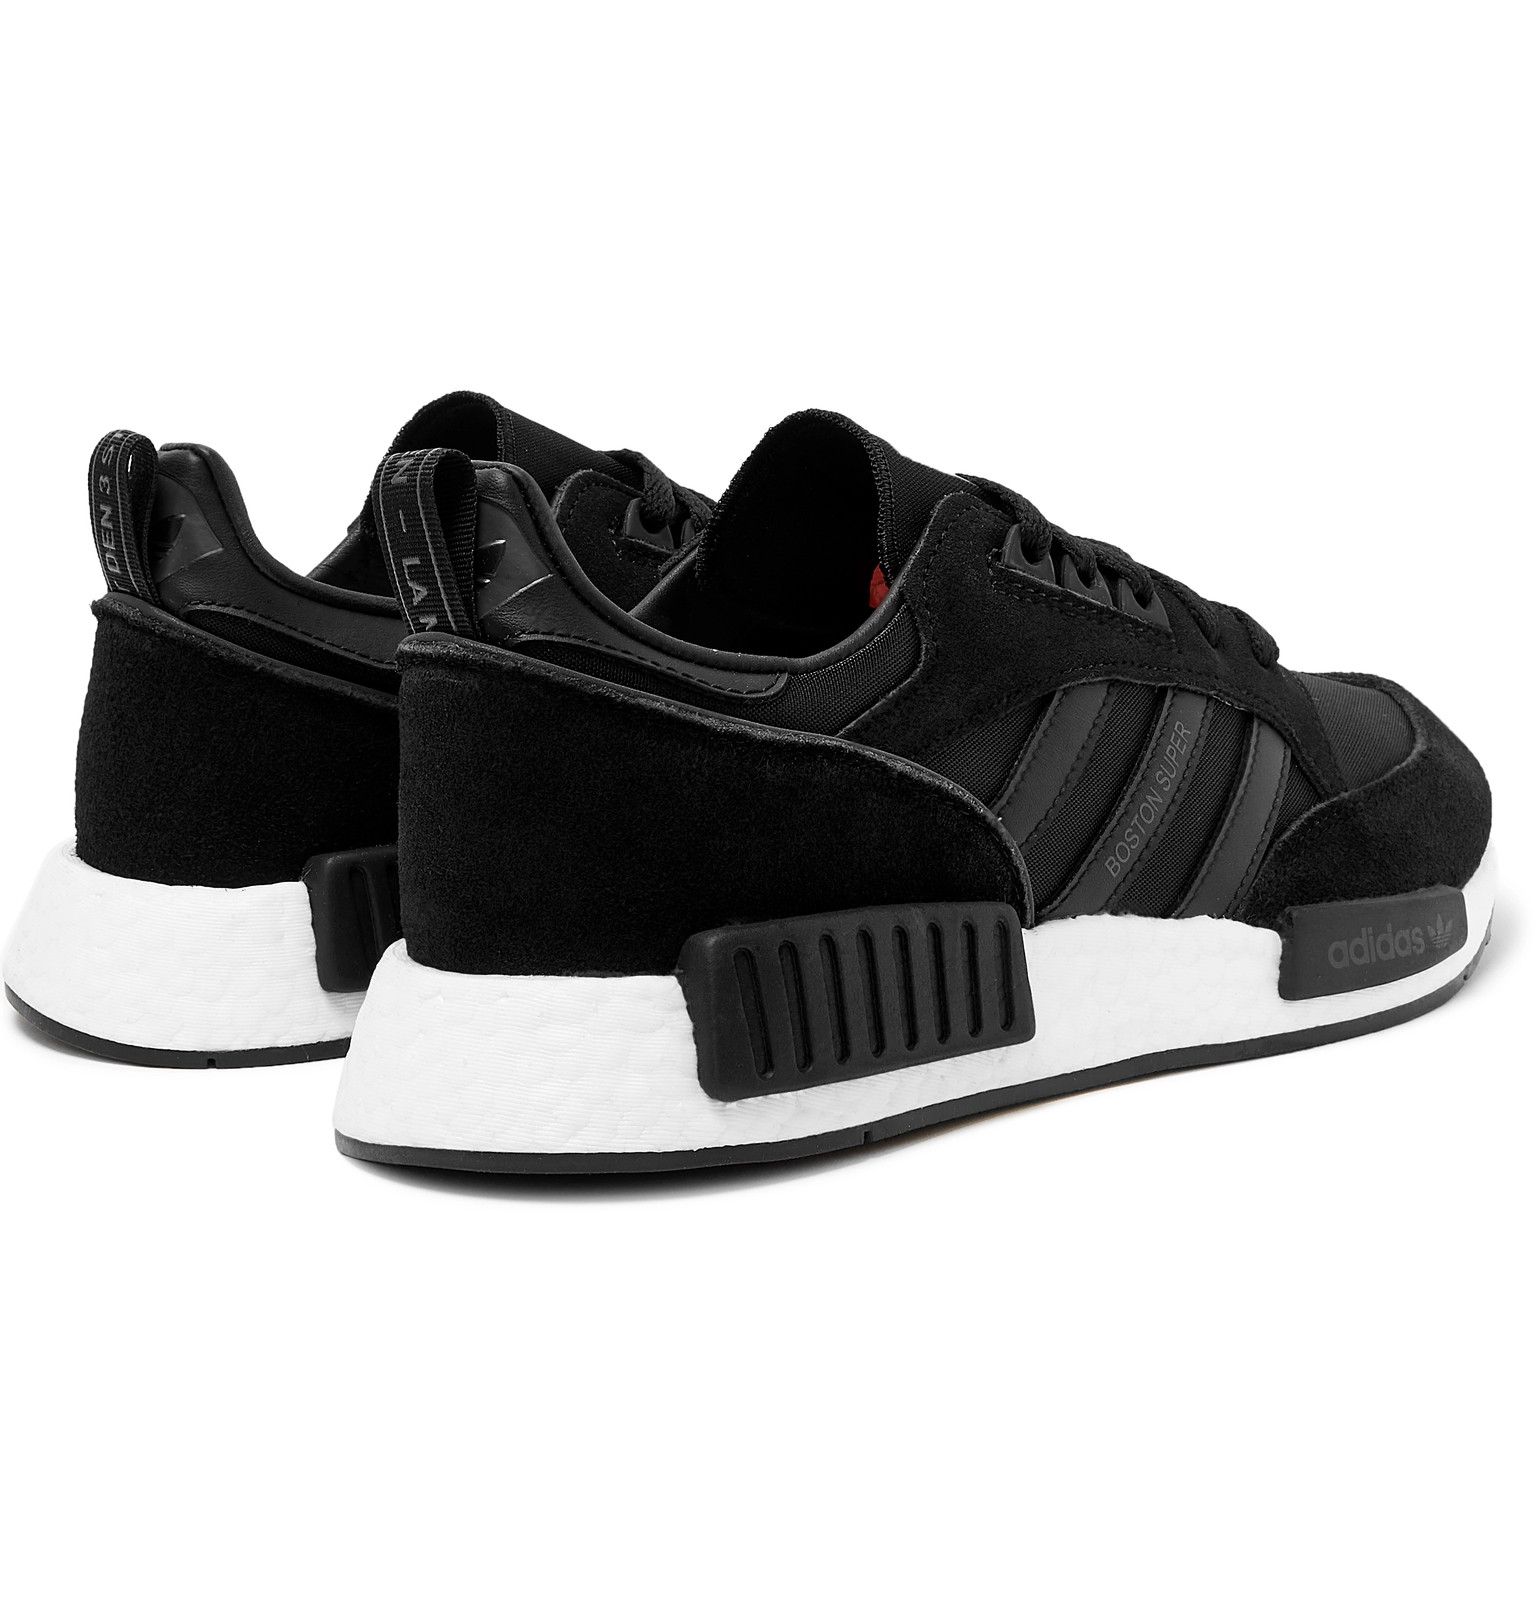 the latest 43814 47043 adidas OriginalsBoston Super x R1 Suede, Leather and Mesh Sneakers